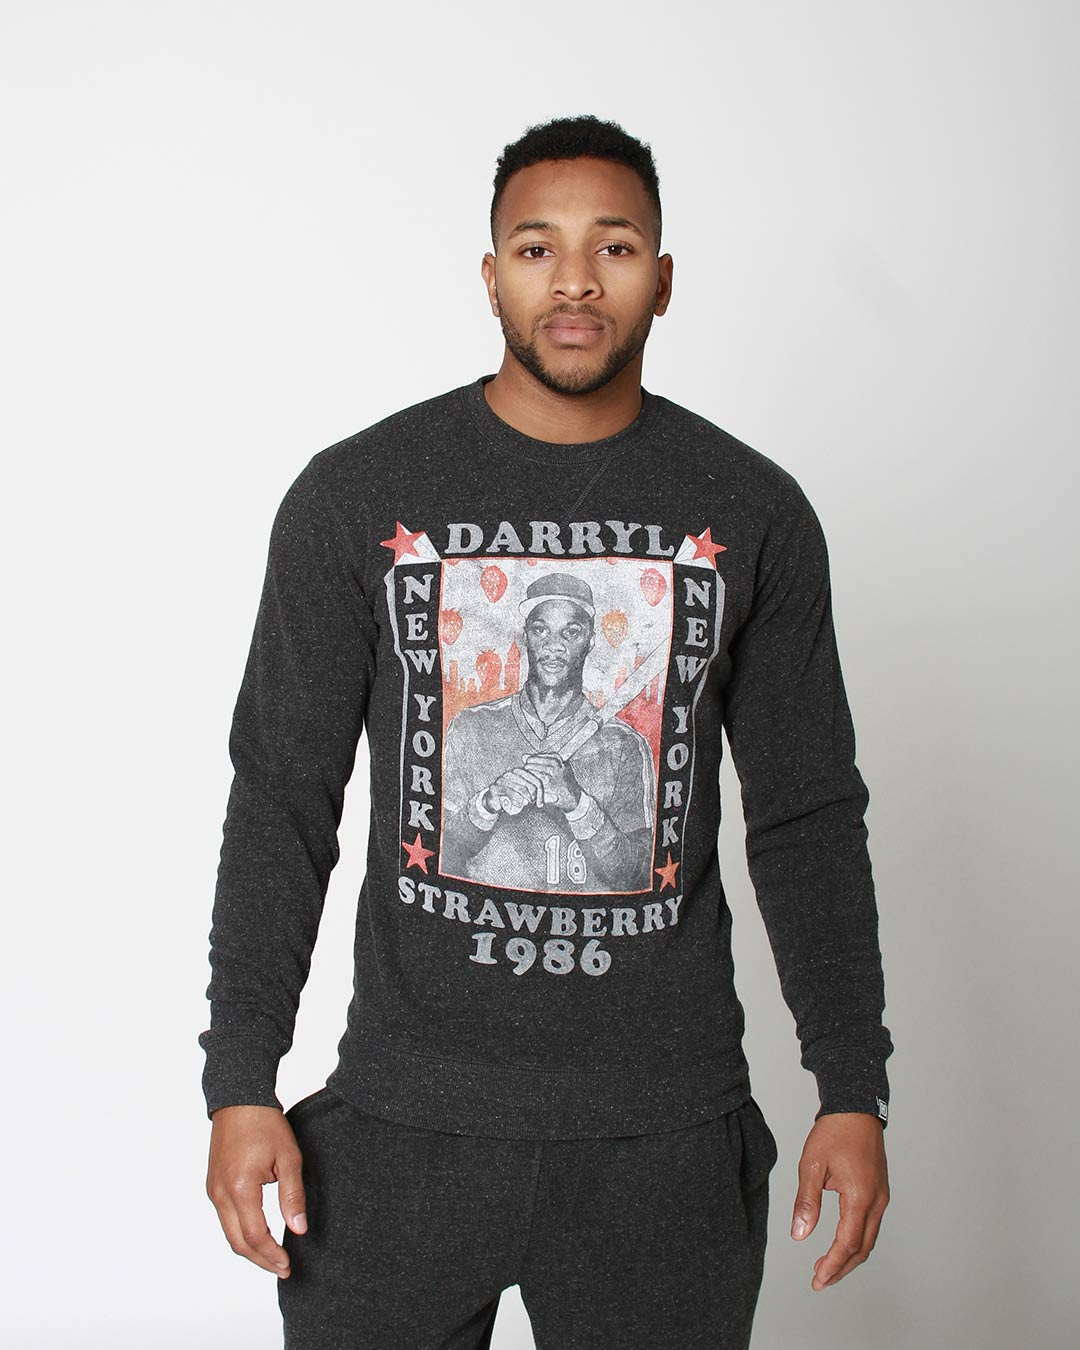 Darryl Strawberry NY 1986 Sweatshirt